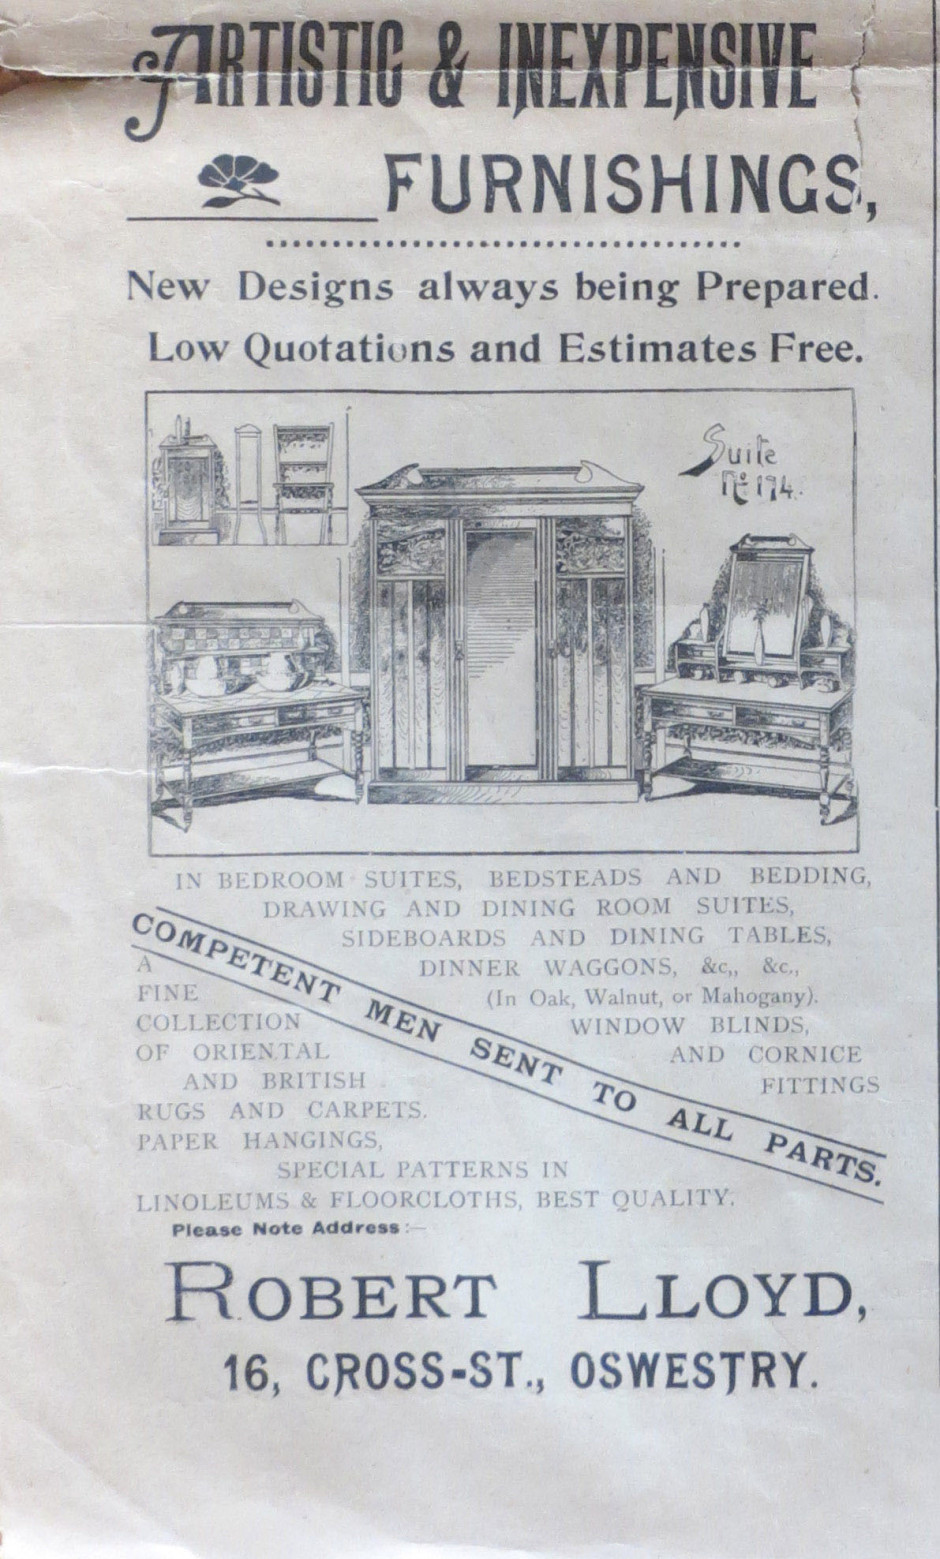 NP-O-5-7-48 - Robert Lloyd Advert 1899